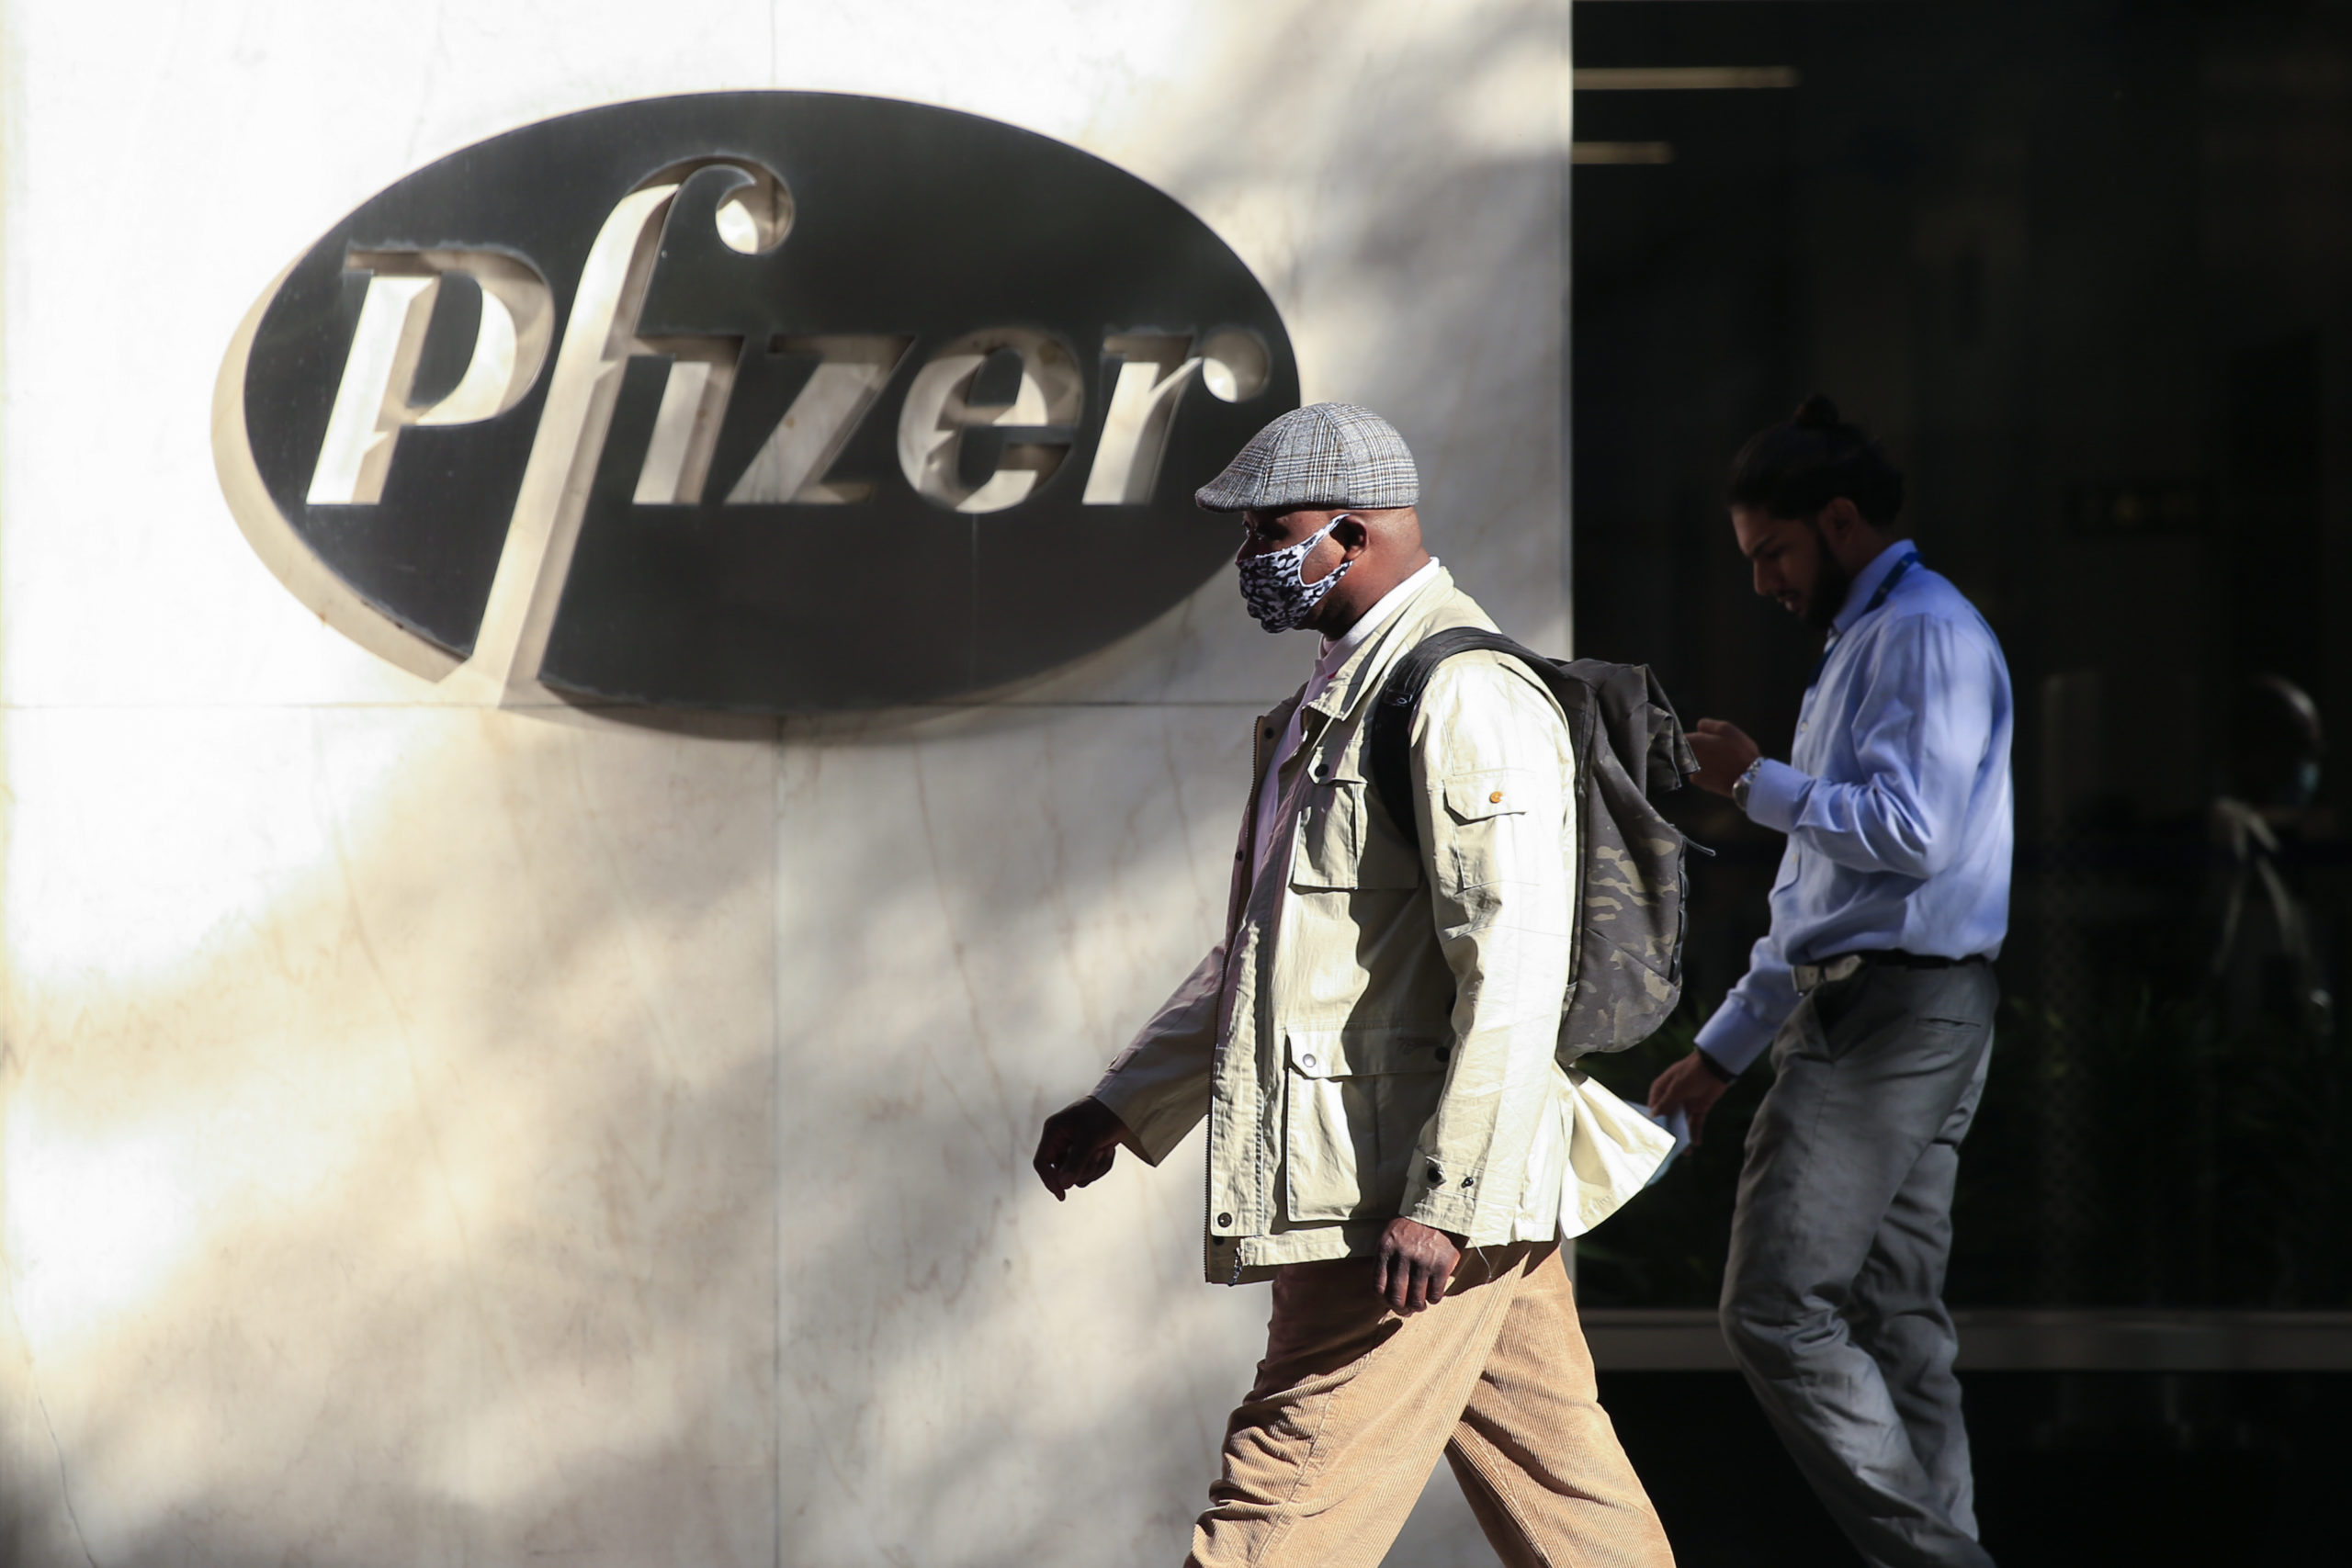 People walk by the Pfizer world headquarters in New York on Monday. (Kena Betancur/AFP via Getty Images)